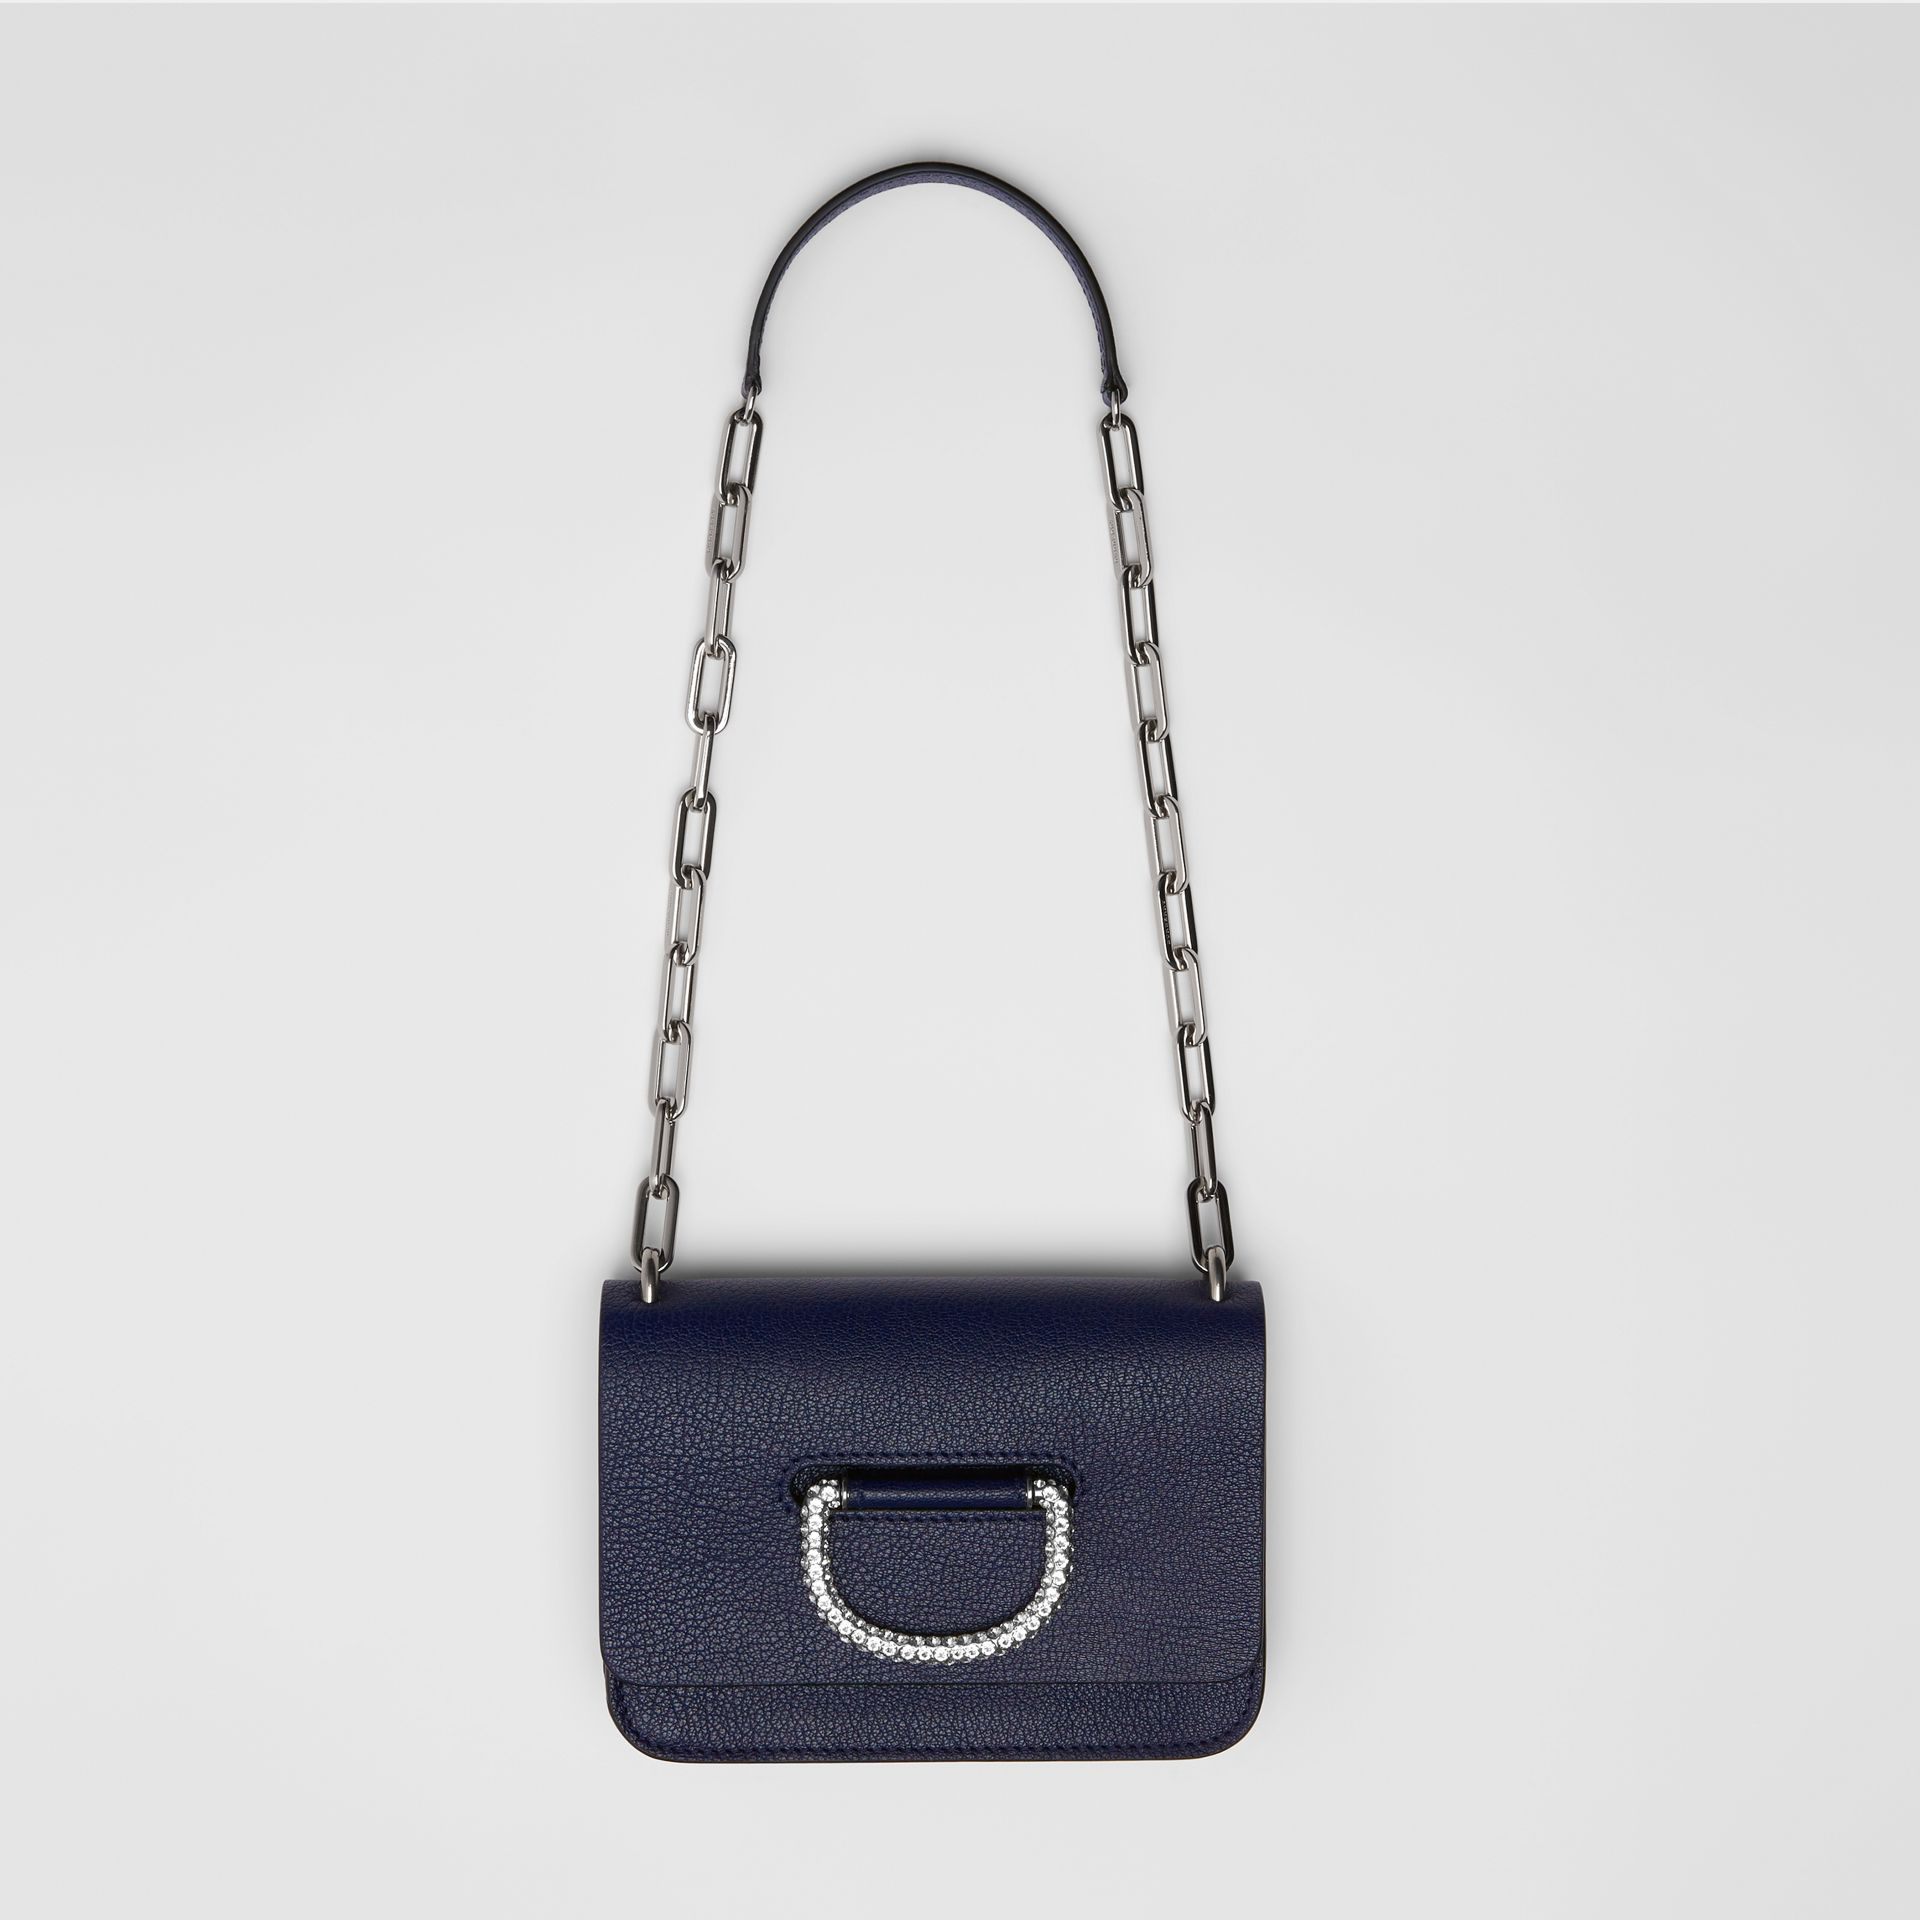 Mini sac The D-ring en cuir avec cristaux (Bleu Régence) - Femme | Burberry Canada - photo de la galerie 4